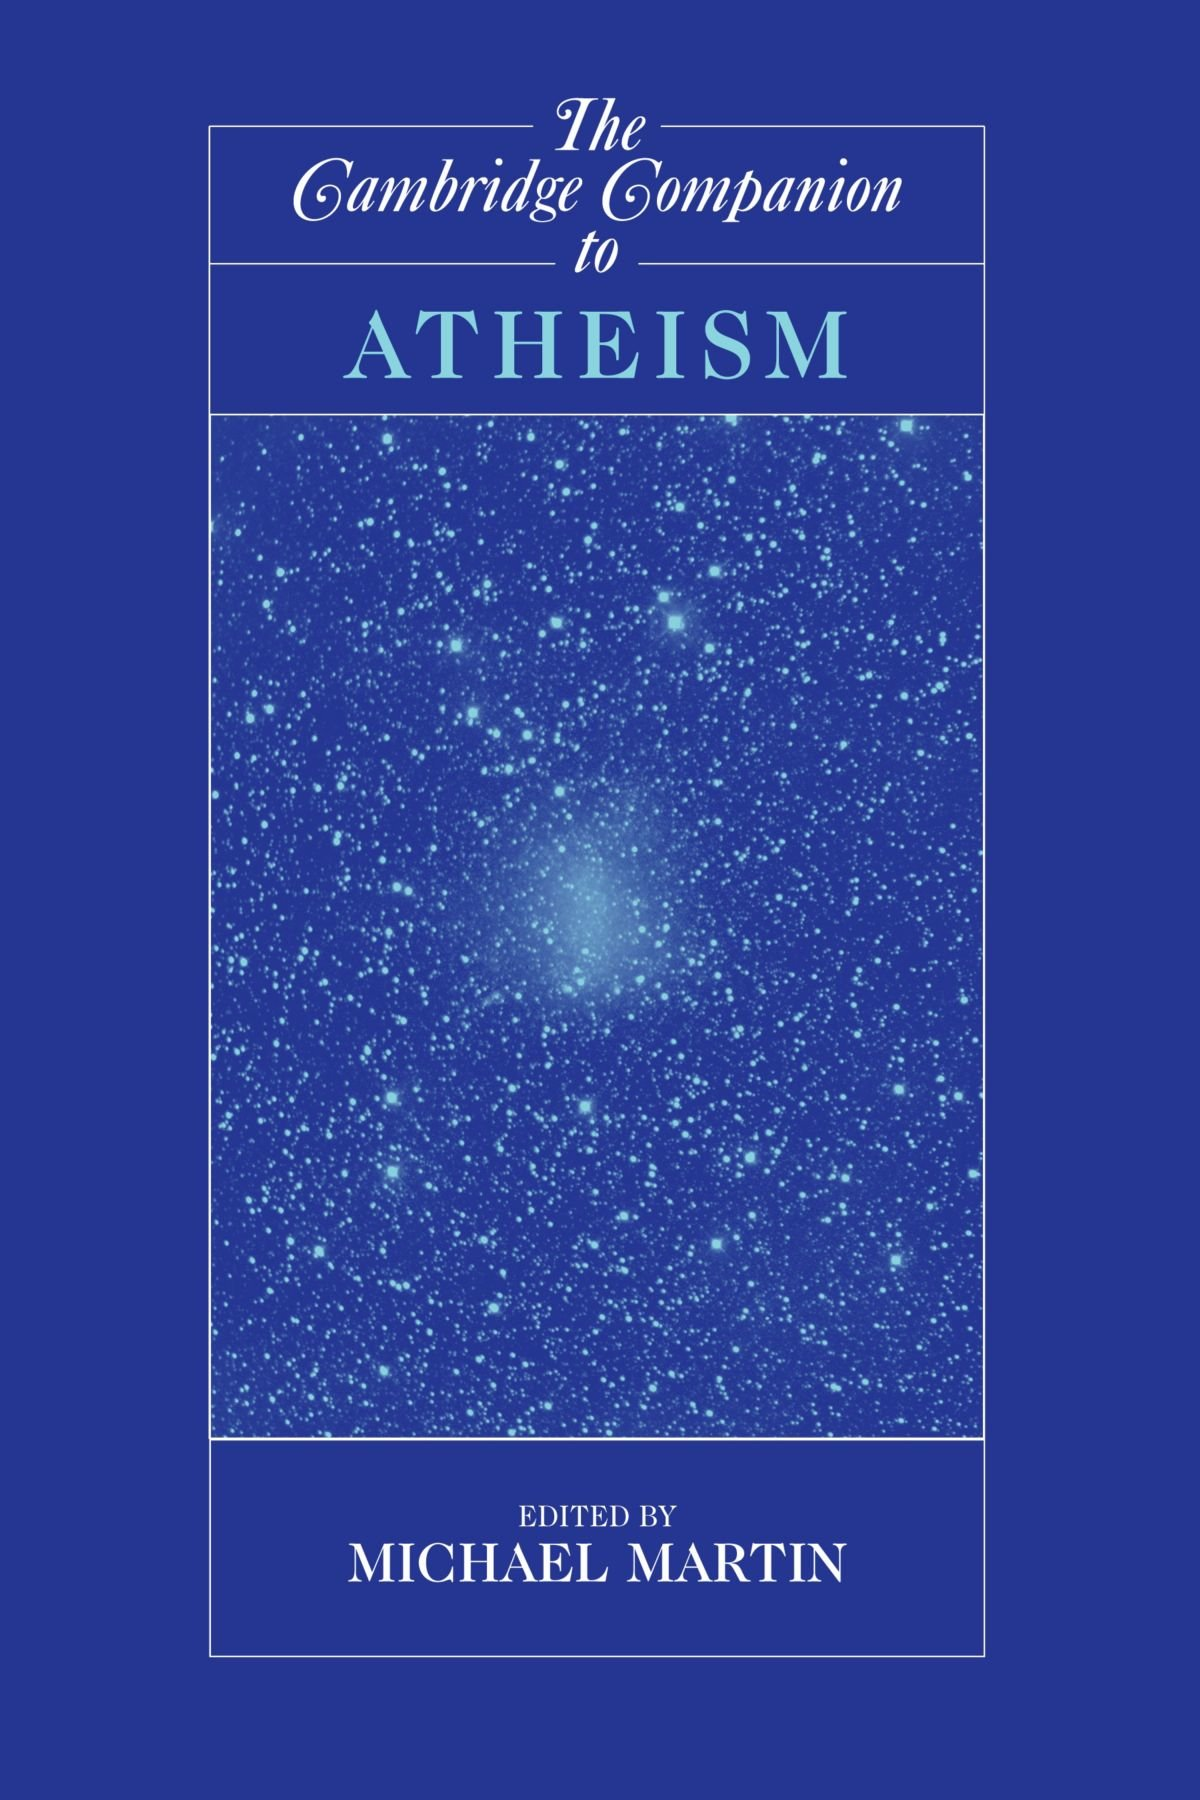 The Cambridge Companion to Atheism